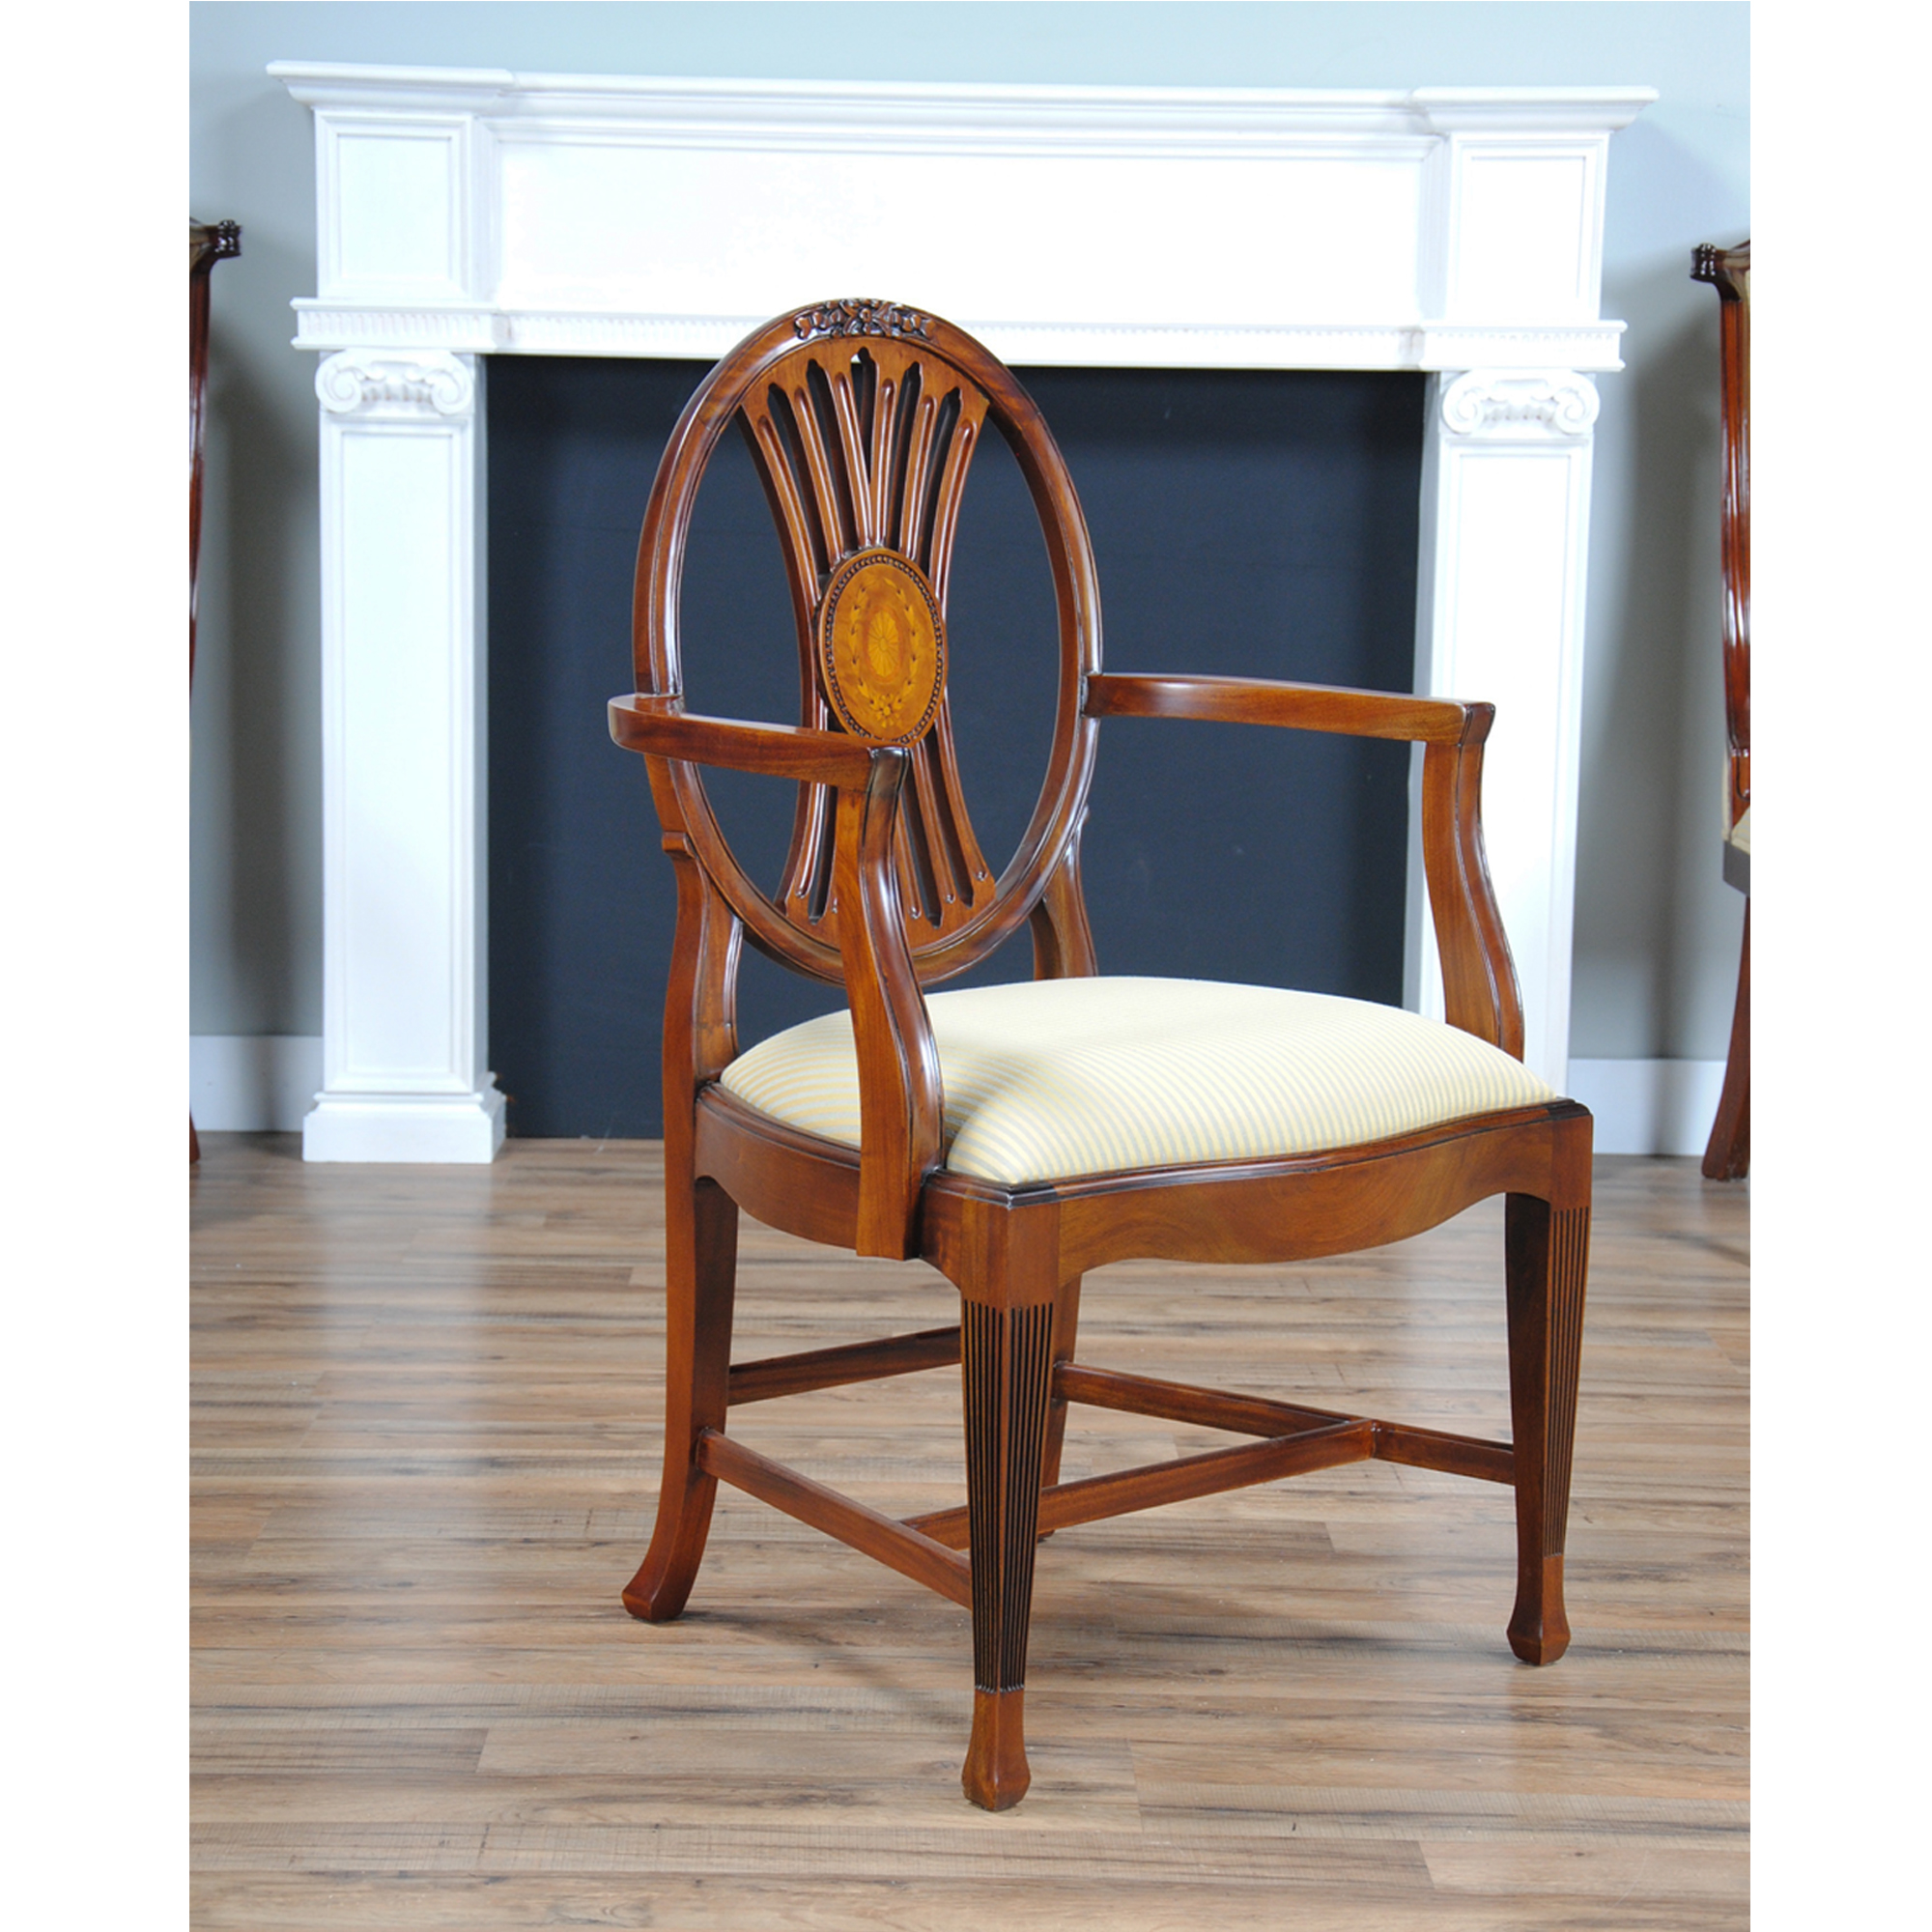 Round Back Dining Room Chairs Round Back Inlaid Arm Chair Niagara Furniture Mahogany